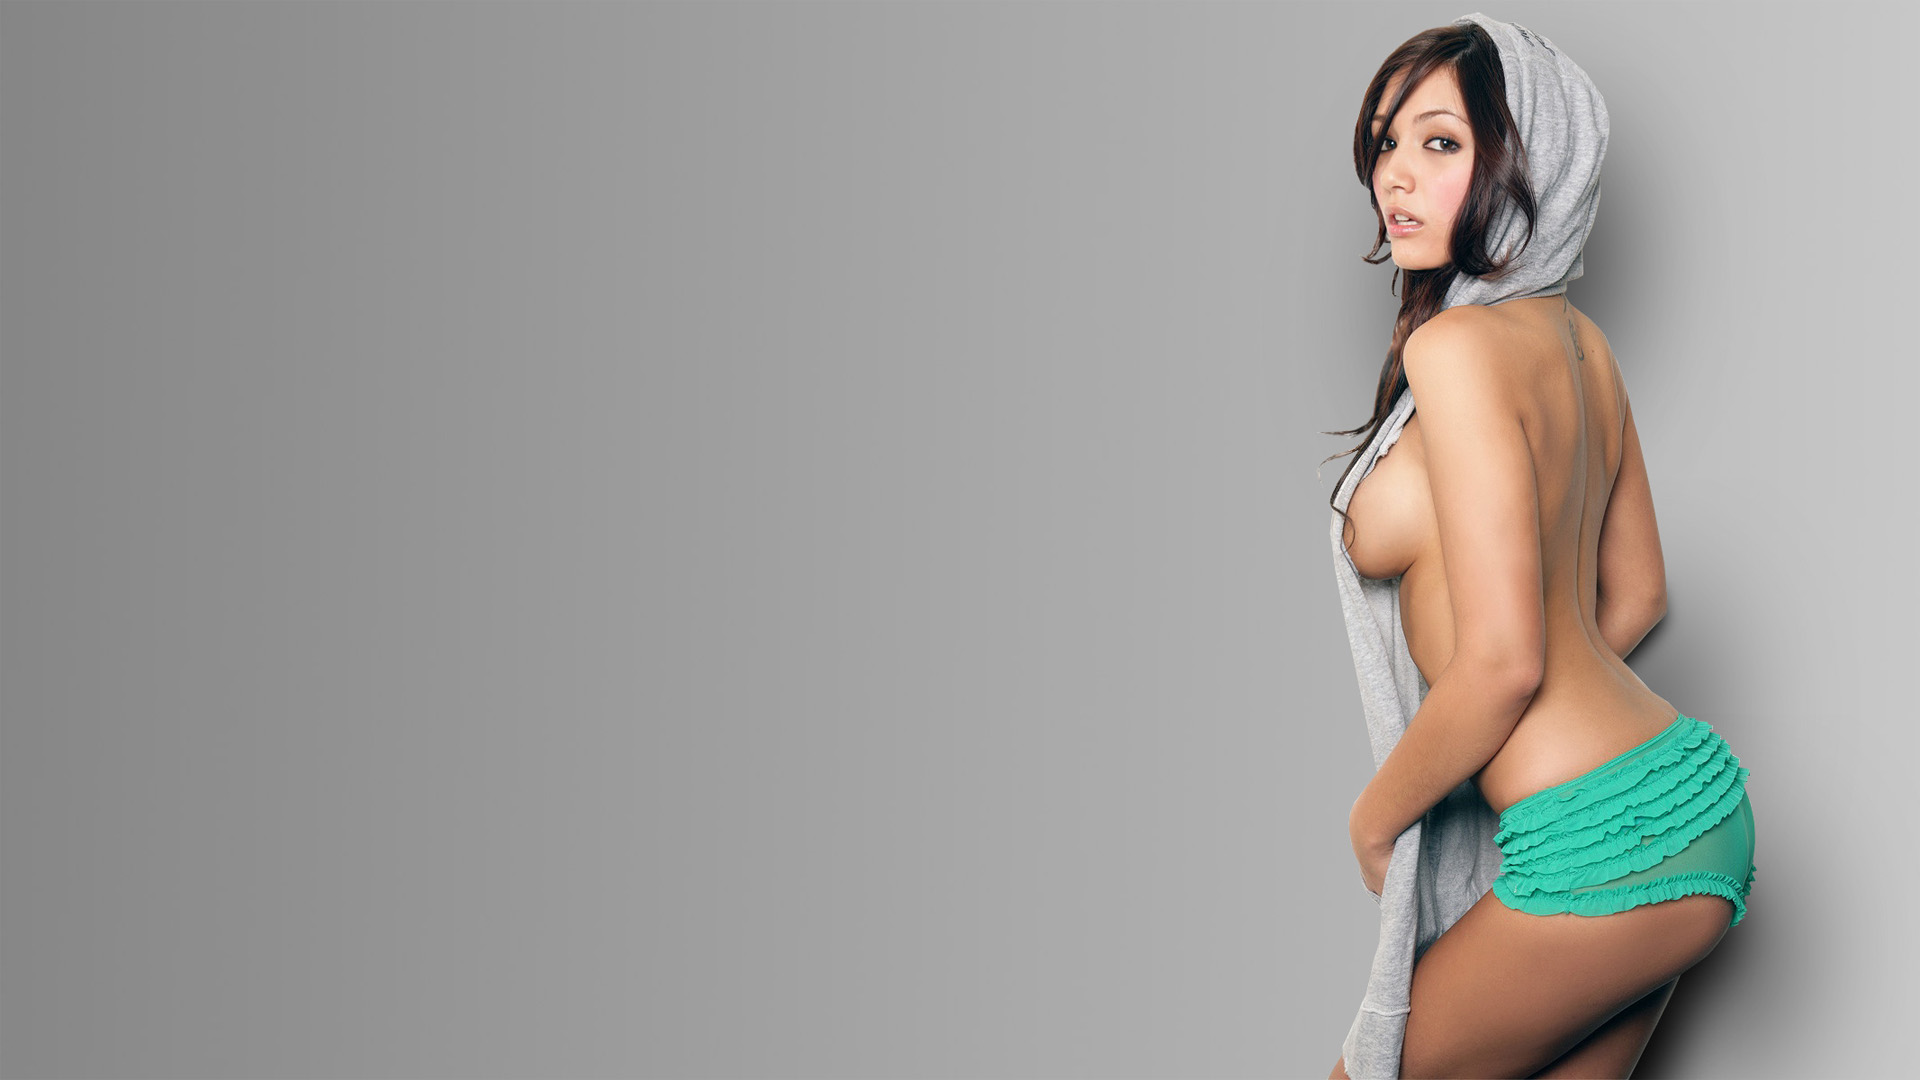 Misa Campo 3 Wallpapers